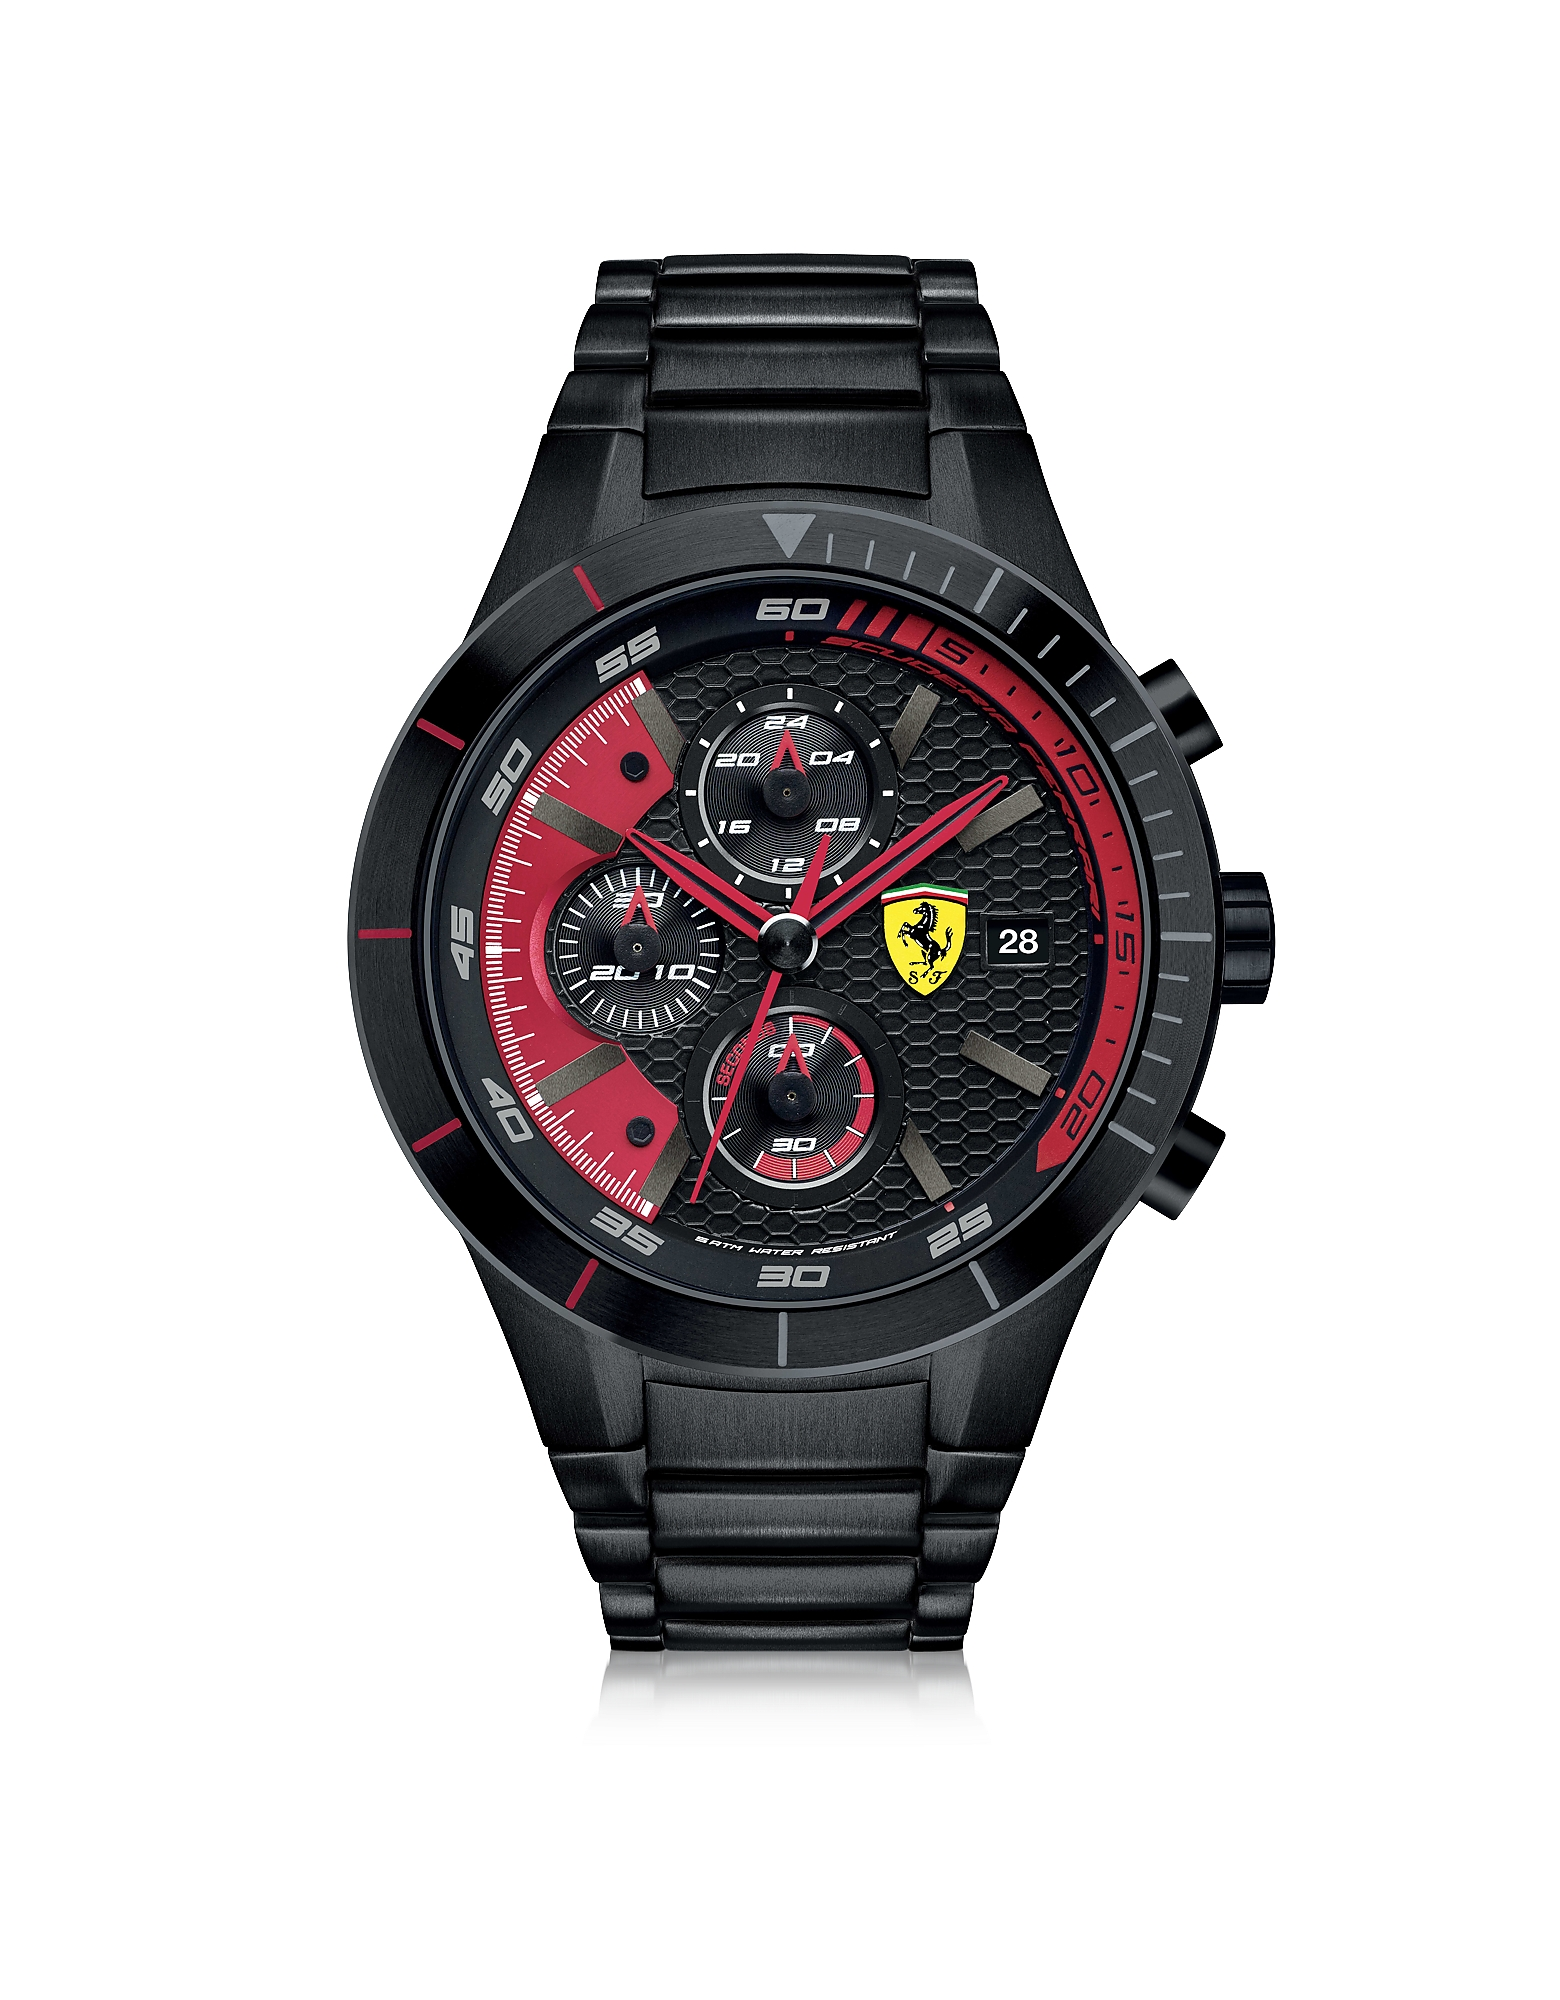 Ferrari Men's Watches, RedRev Evo Black Stainless Steel Men's Chrono Watch